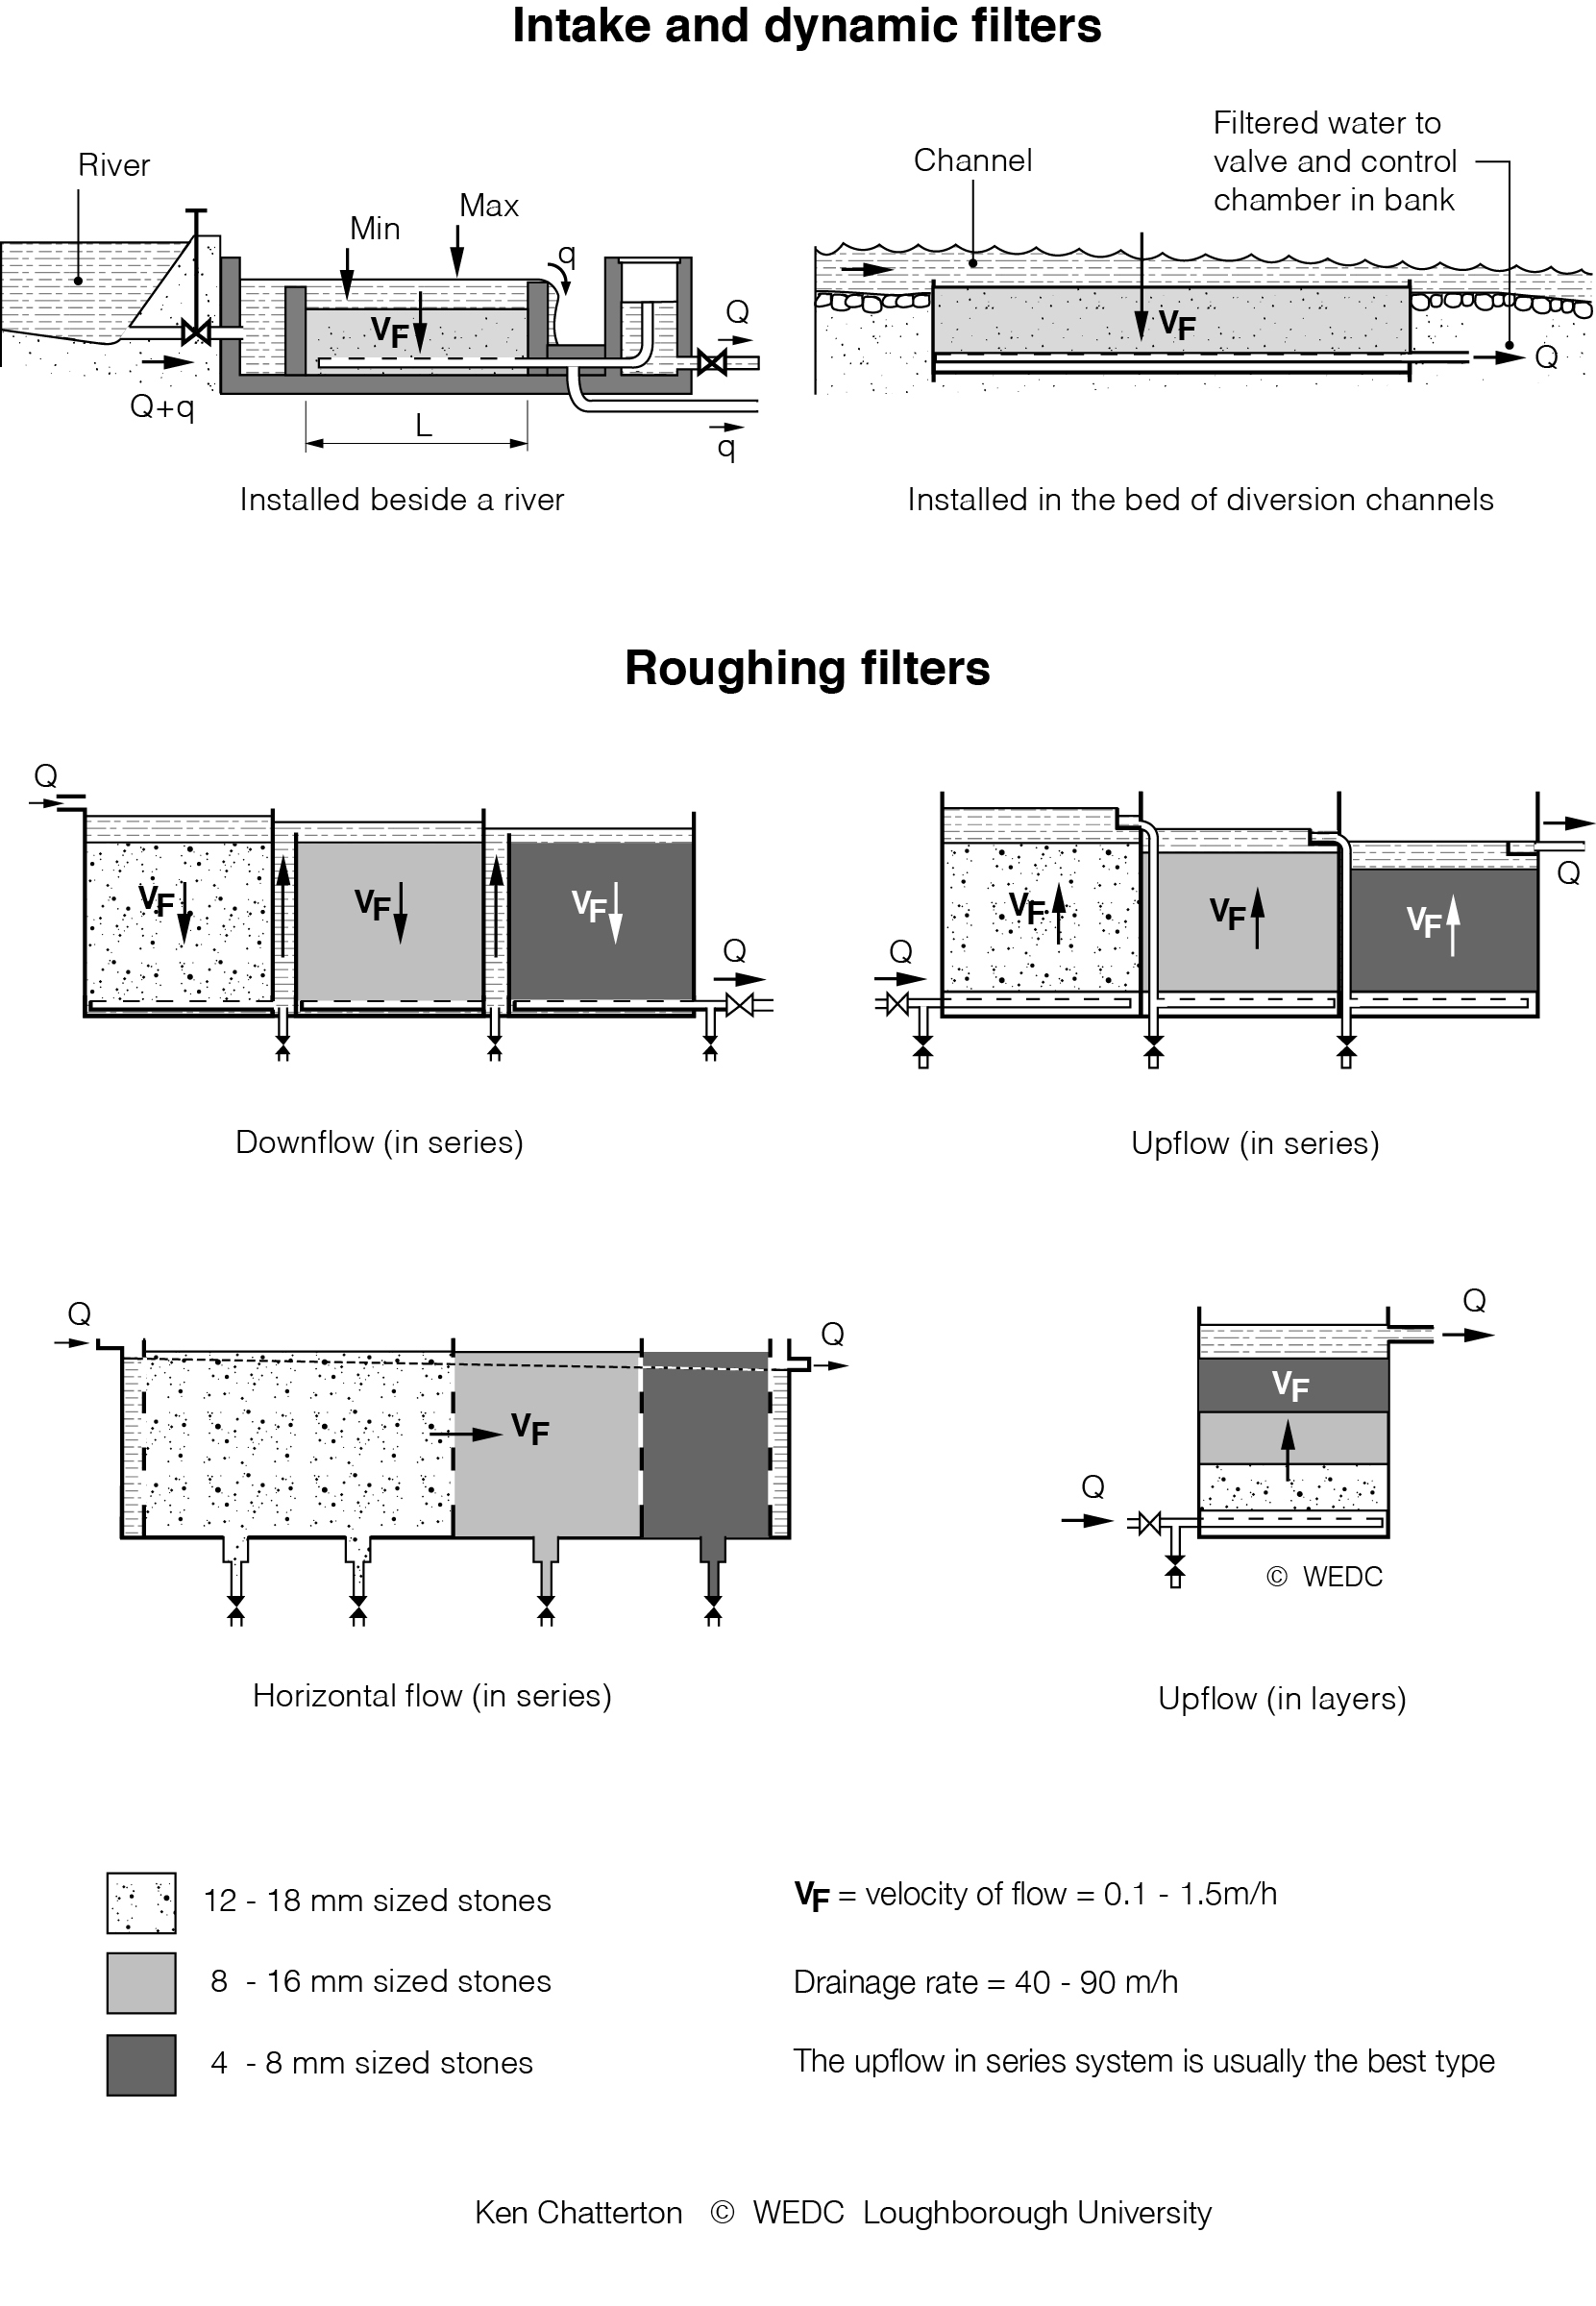 9d01e832a53f Details of intake dynamic and roughing filters. Artist  Chatterton